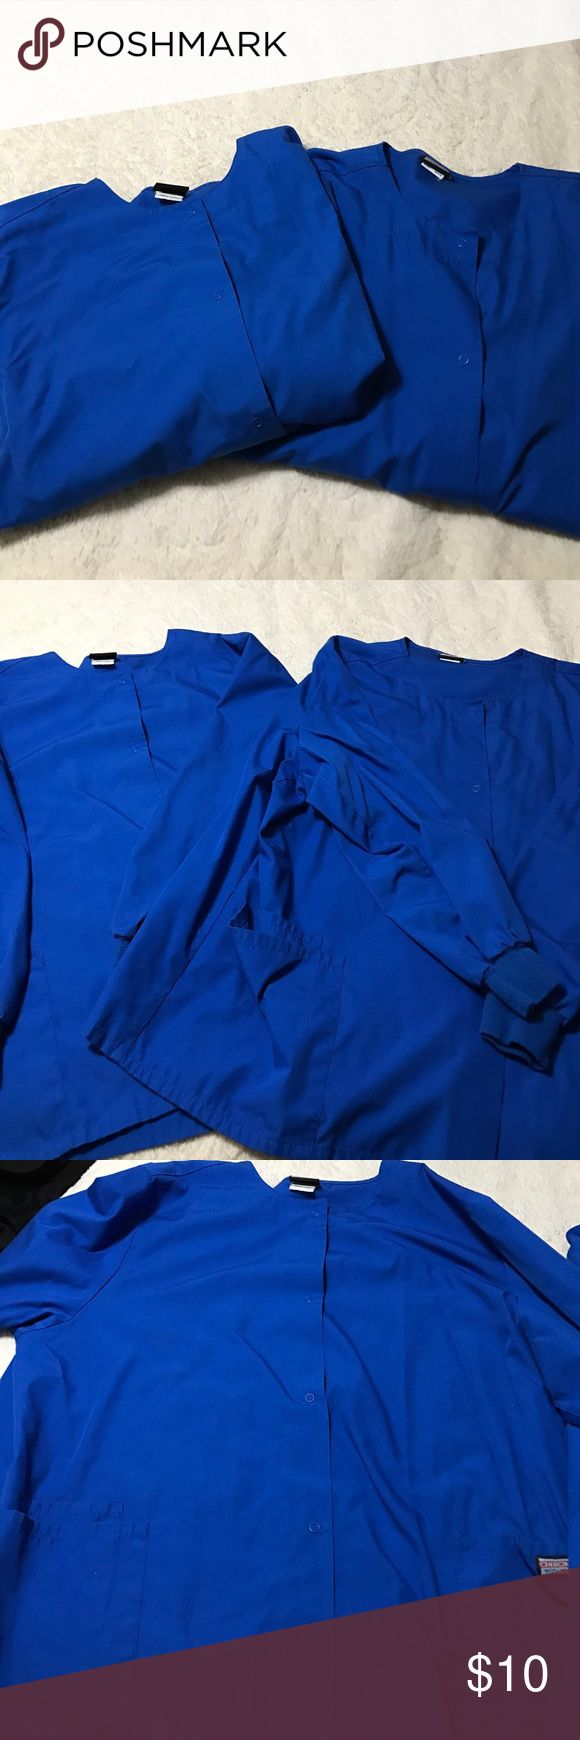 Two button down scrub jackets Cherokee size 2x Two blue button down scrub jackets Cherokee workwear size 2x. Great used condition. Hardly worn. Cherokee Jackets & Coats